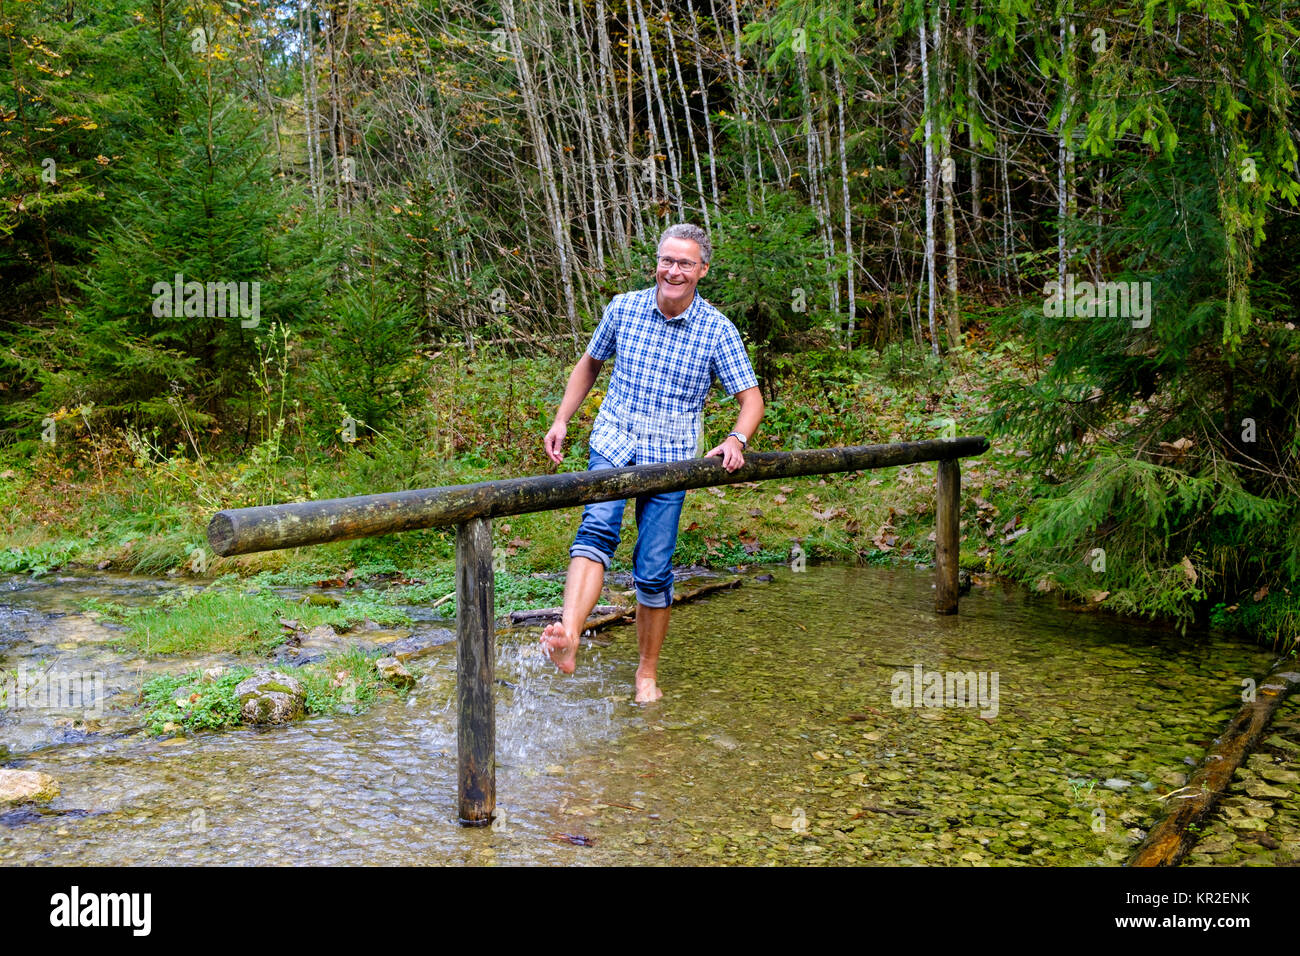 Kneipp man, barefoot in the water Kneipp cure at Schmelzerbach, Inzell, Chiemgau, Upper Bavaria, Bavaria, Germany - Stock Image